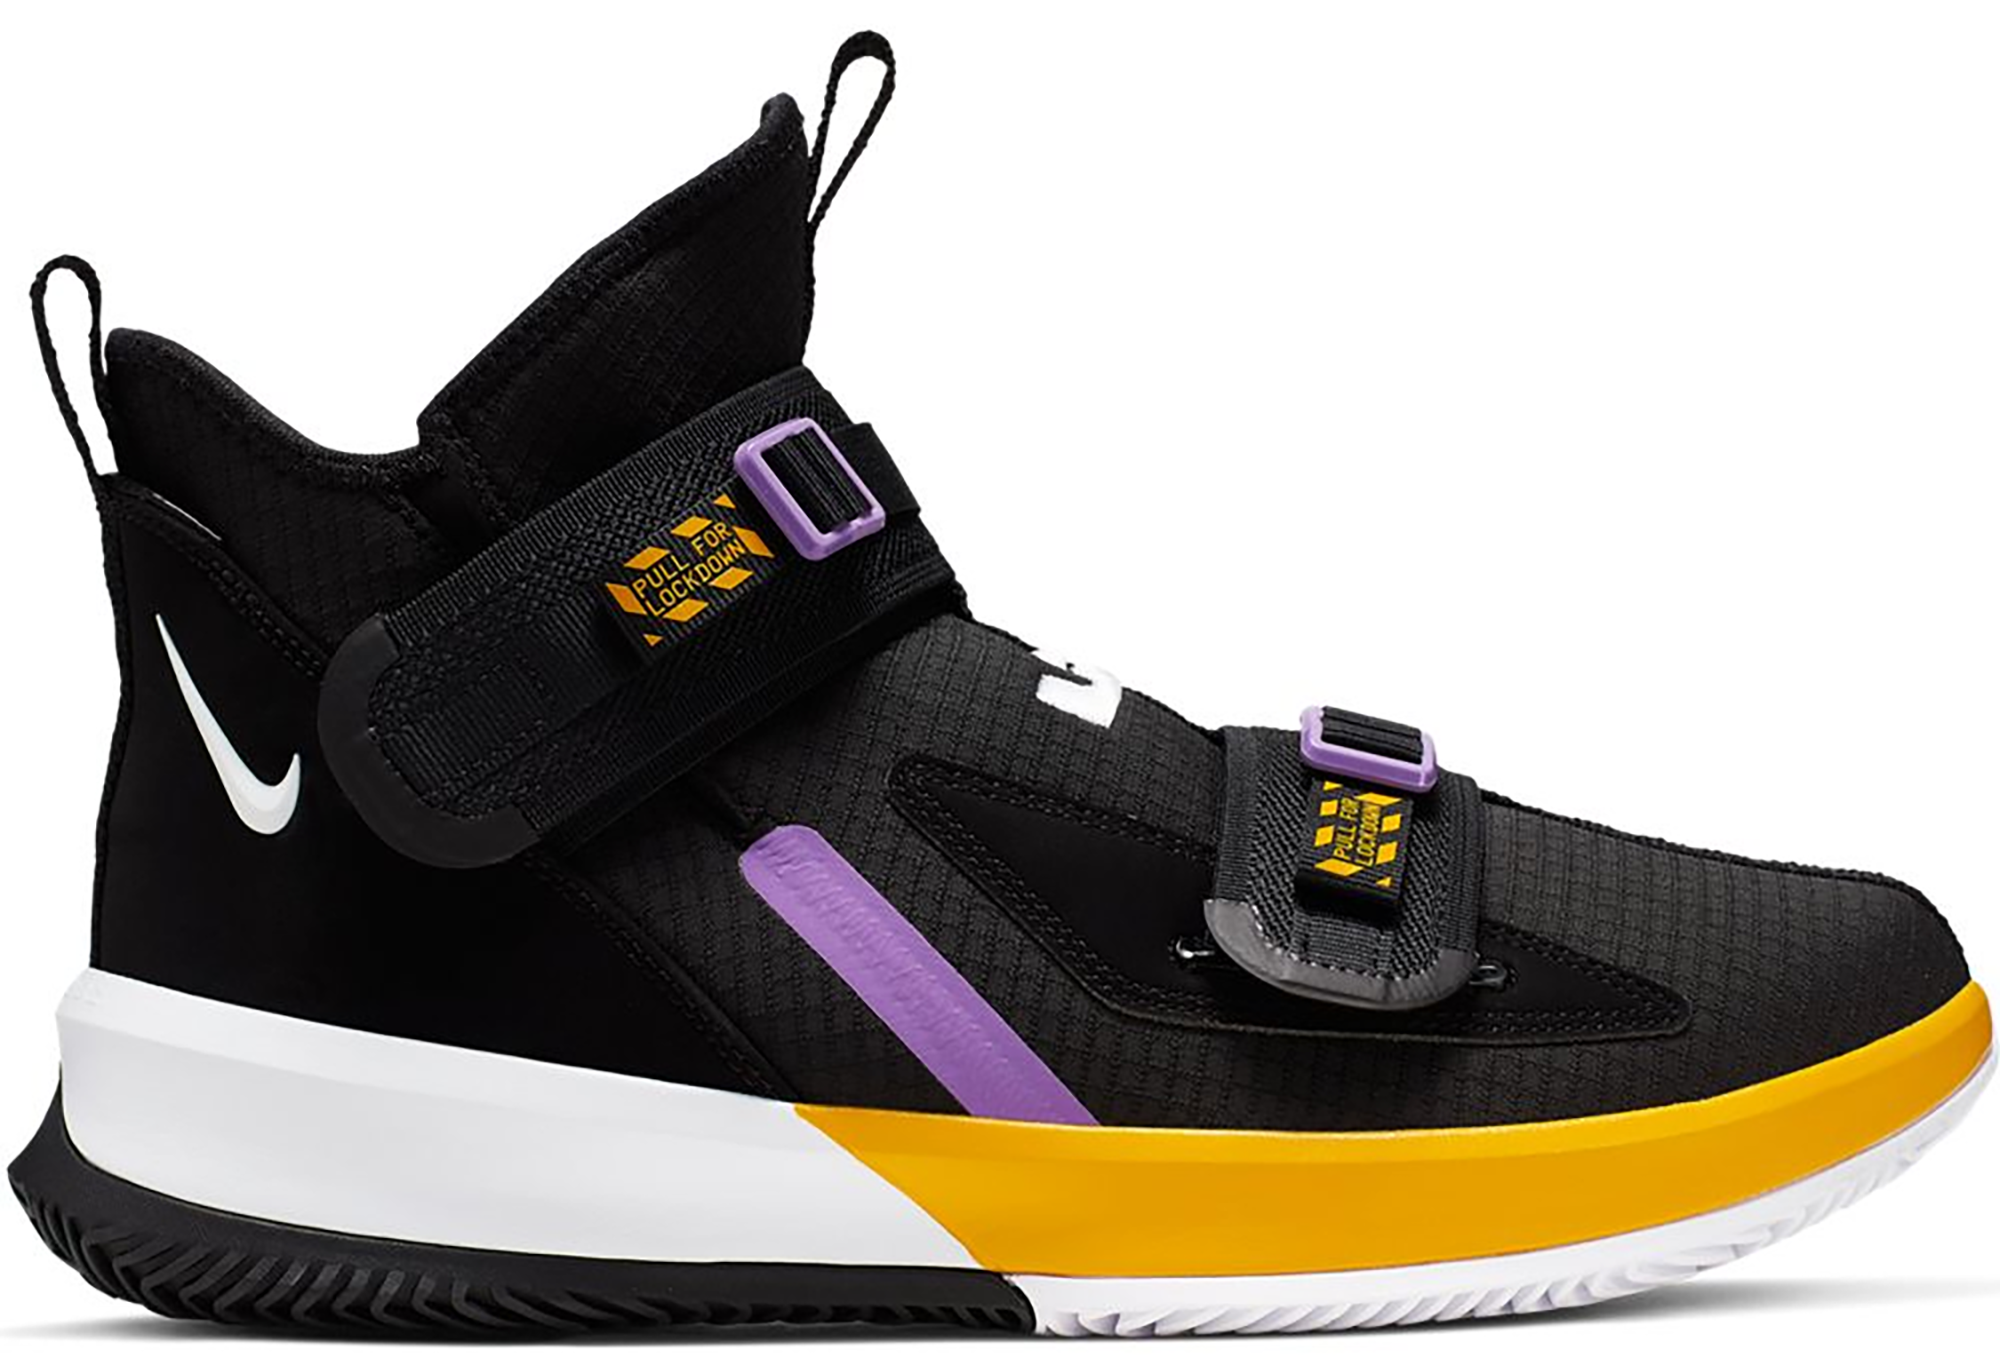 Nike LeBron Soldier 13 Lakers - AR4228-004